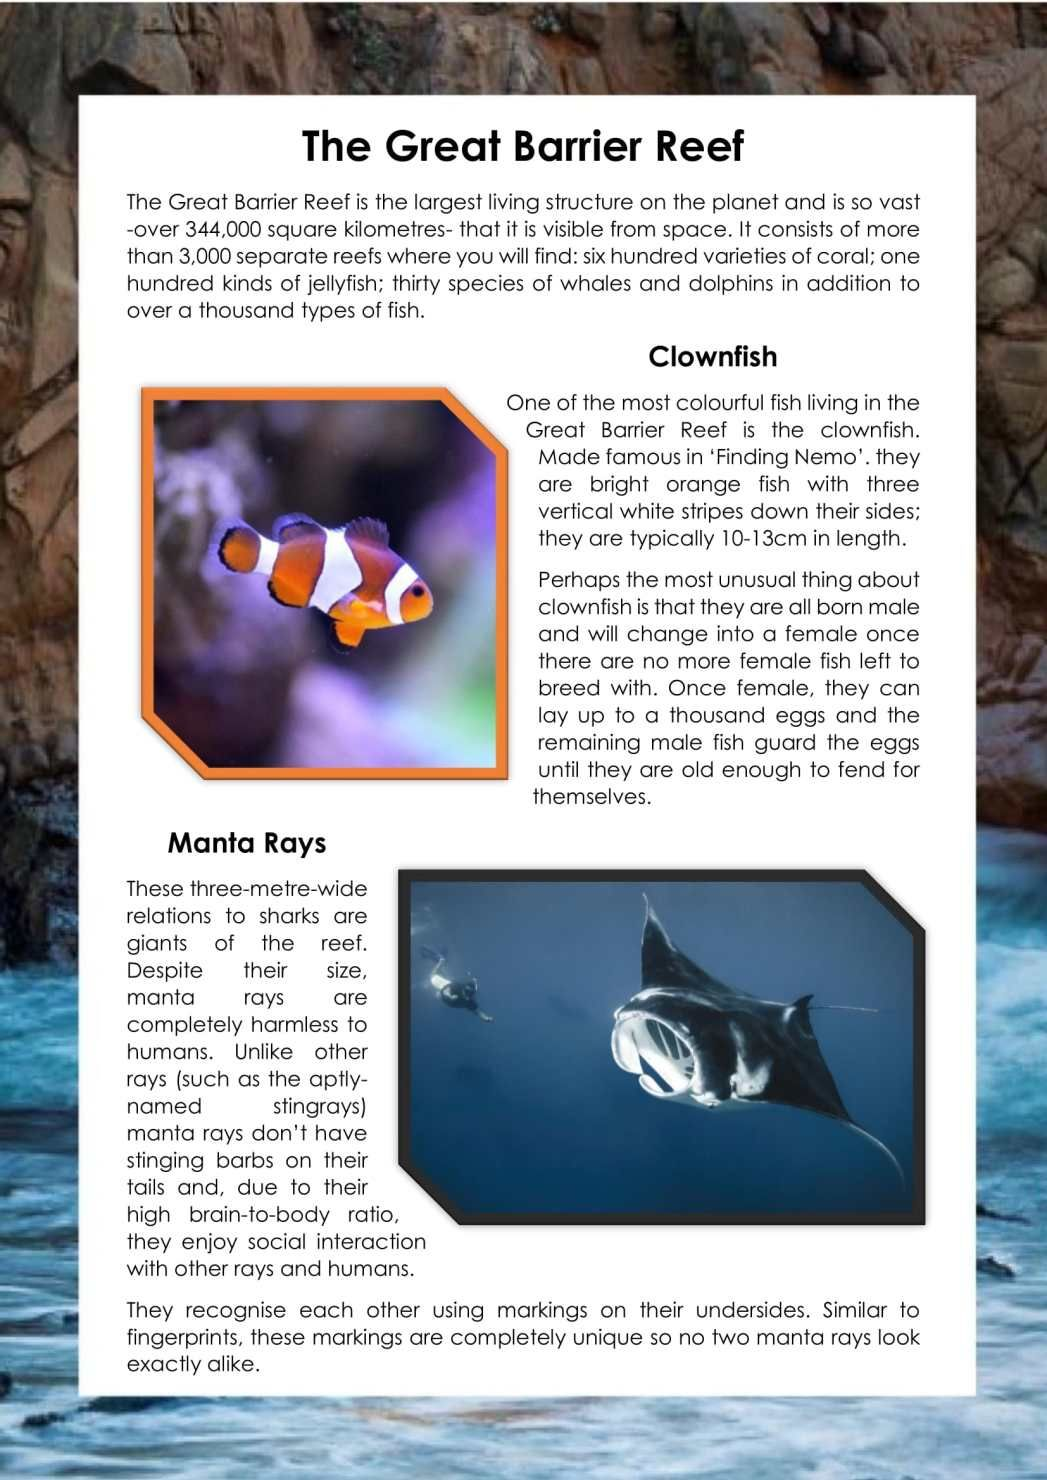 Oceans / Under the Sea / Great Barrier Reef Information